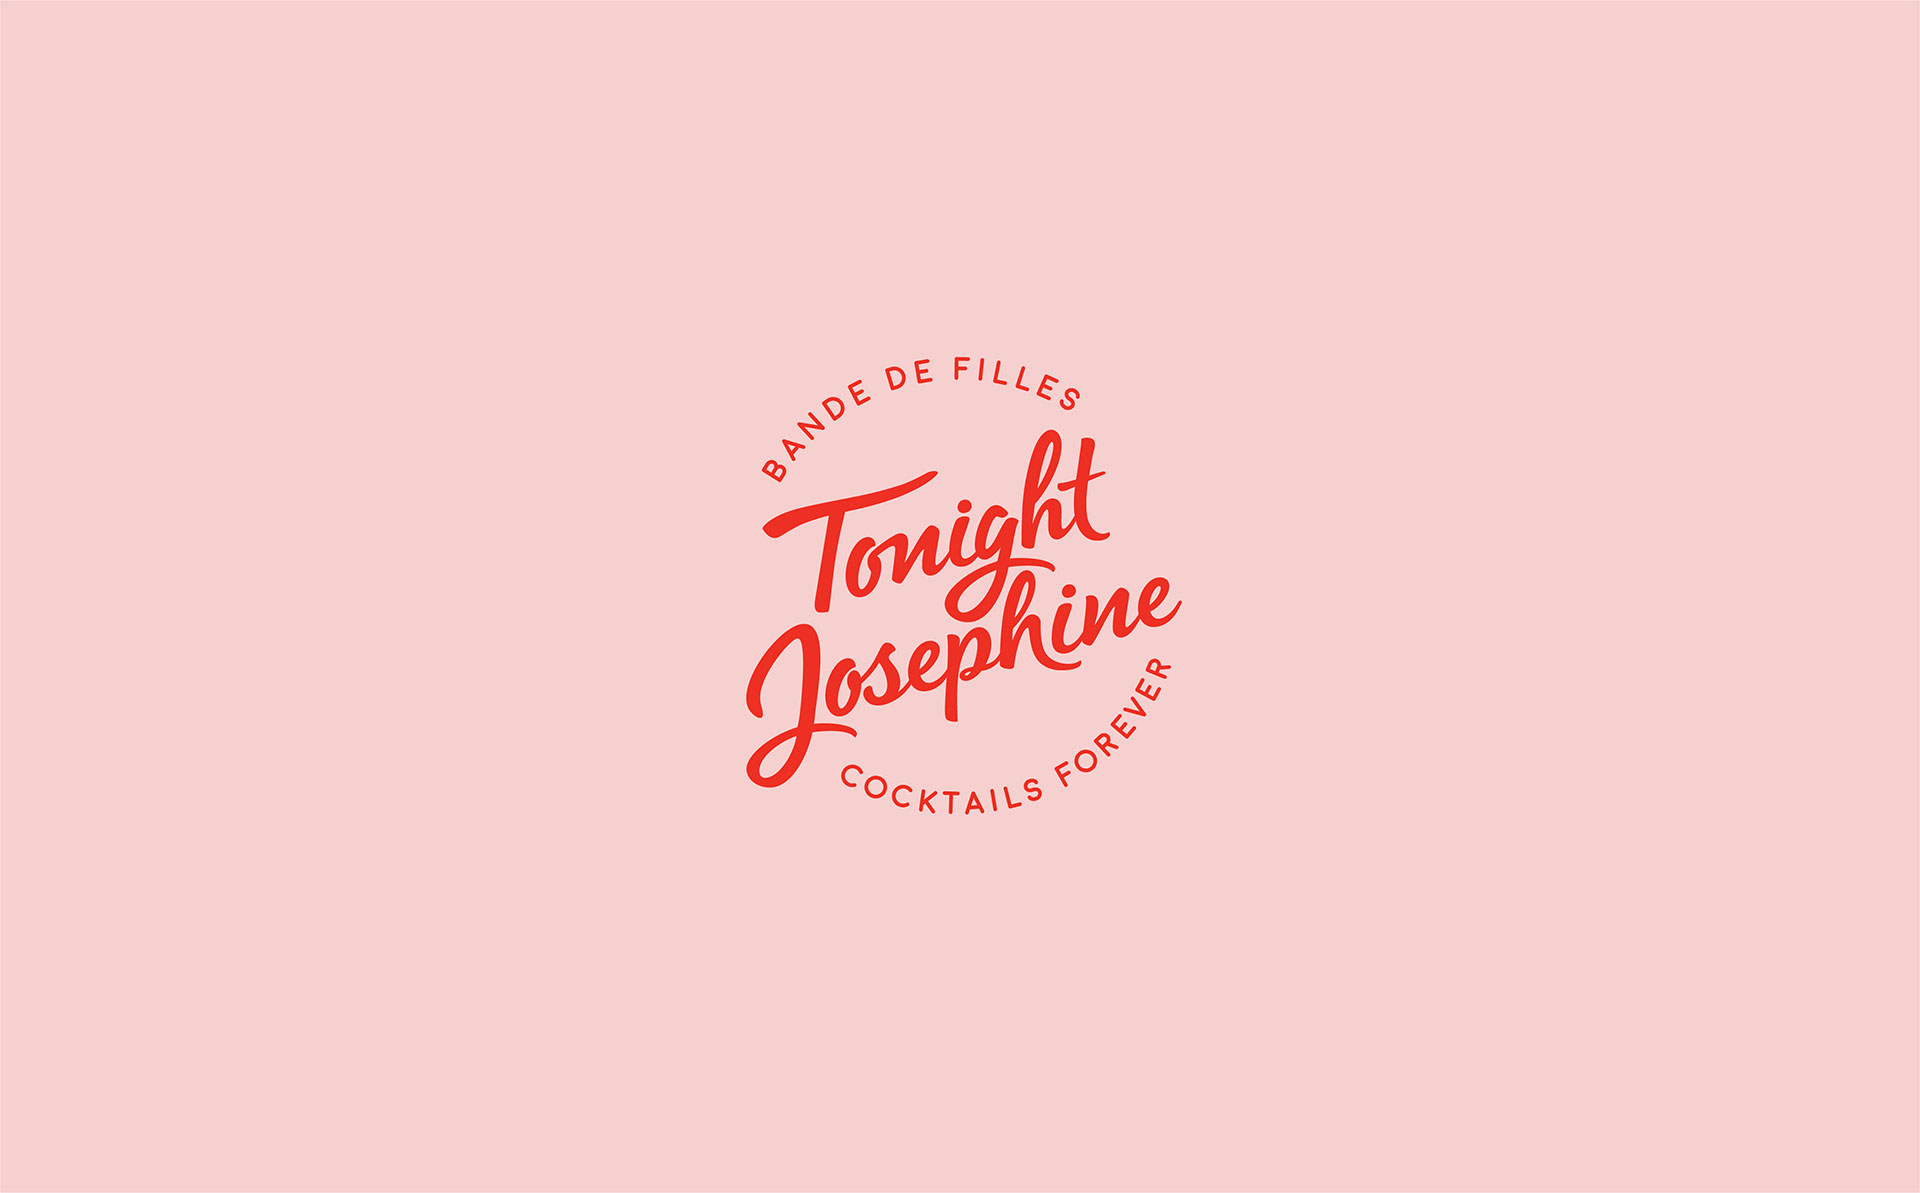 Tonight Josephine Shoreditch